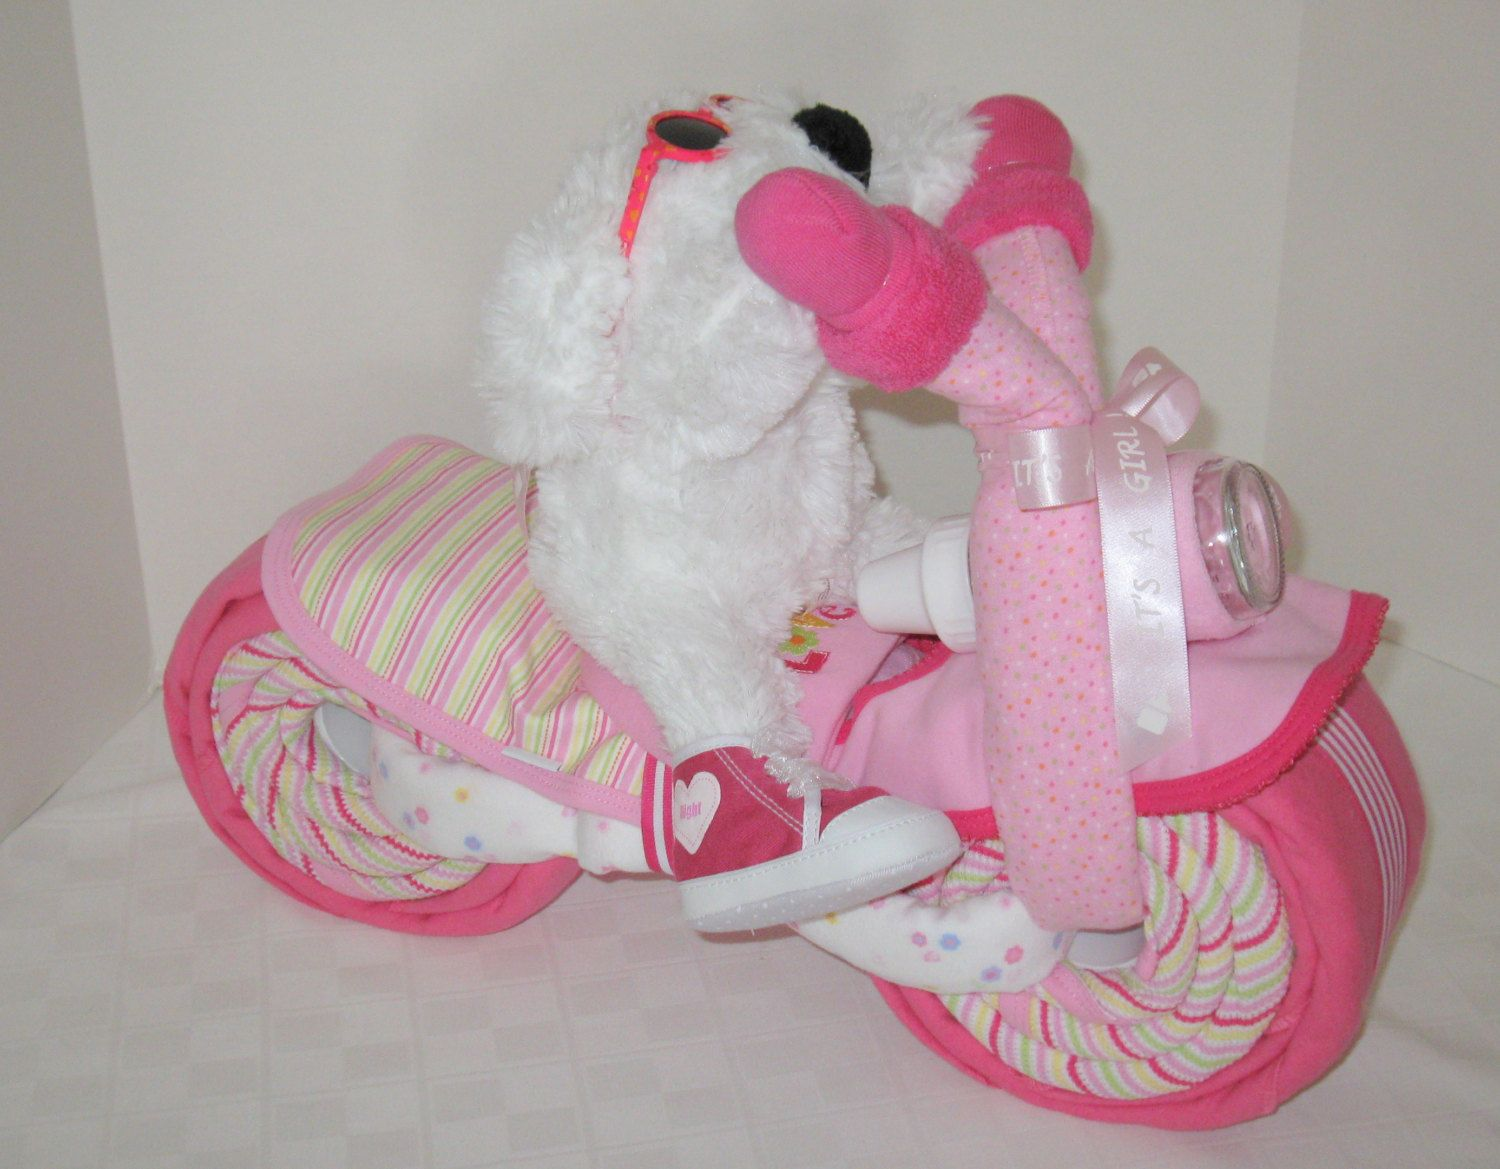 diaper cake motorcycle bike diaper cake baby shower gift centerpiece baby cake baby girl gift doggy